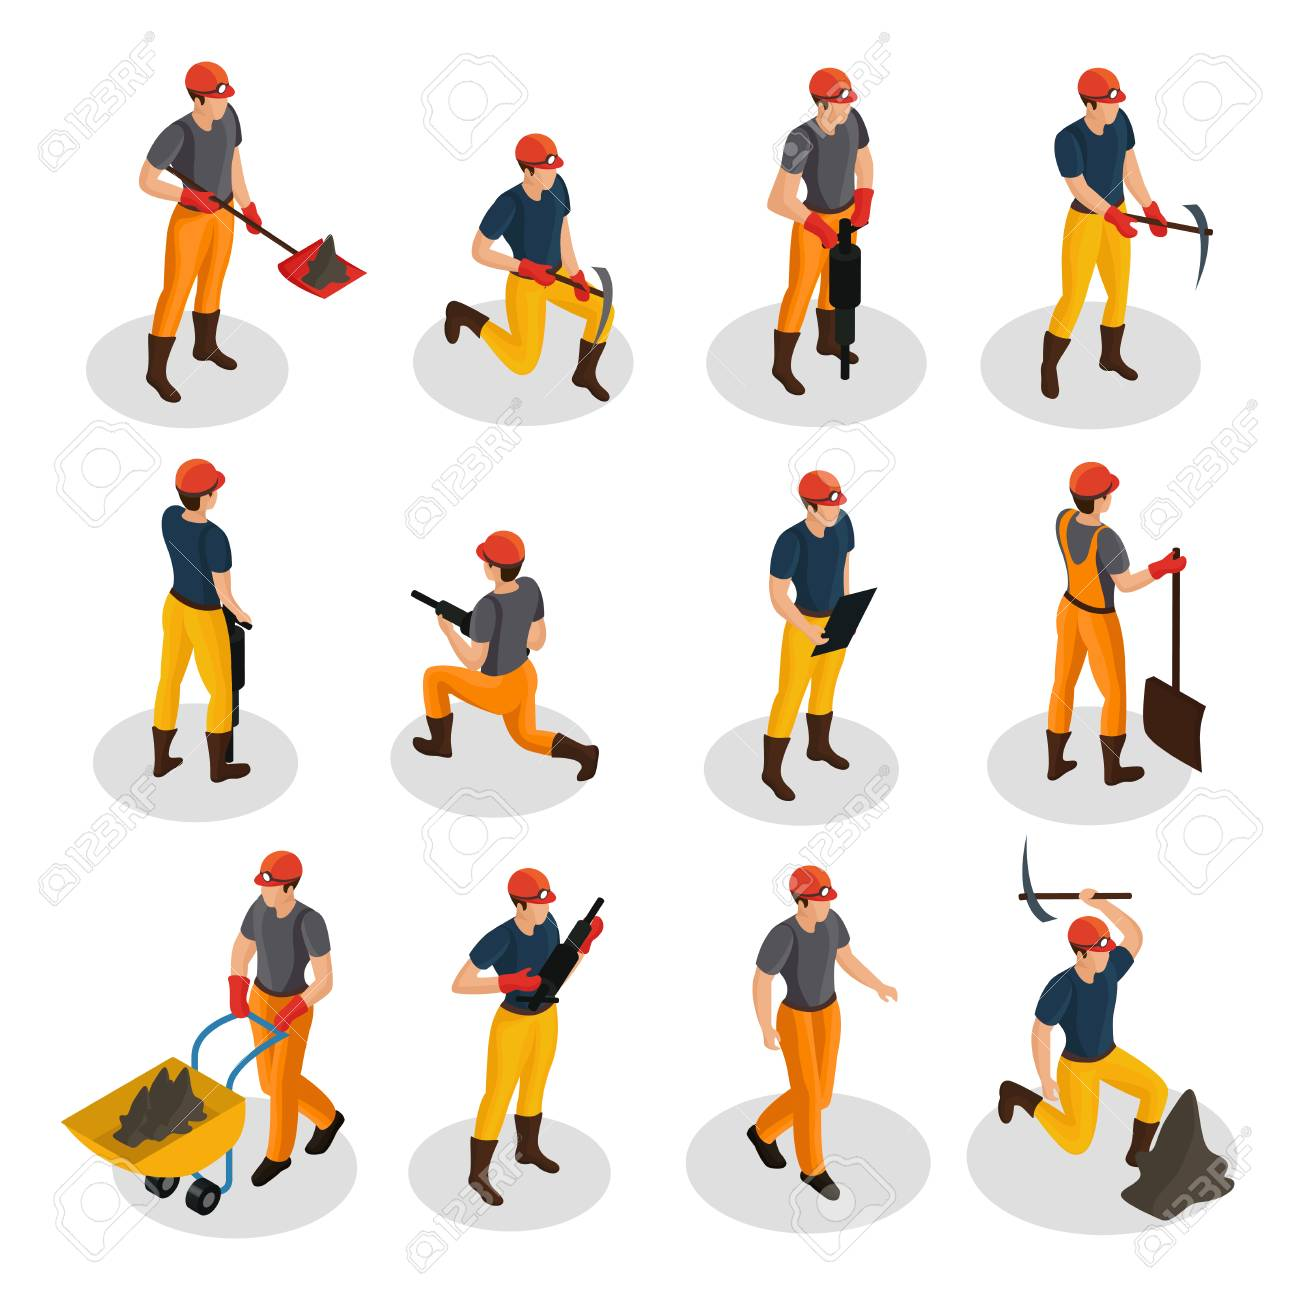 Isometric mining characters set wearing uniform and working with mining equipment and manual labor tools isolated vector illustration - 98208409